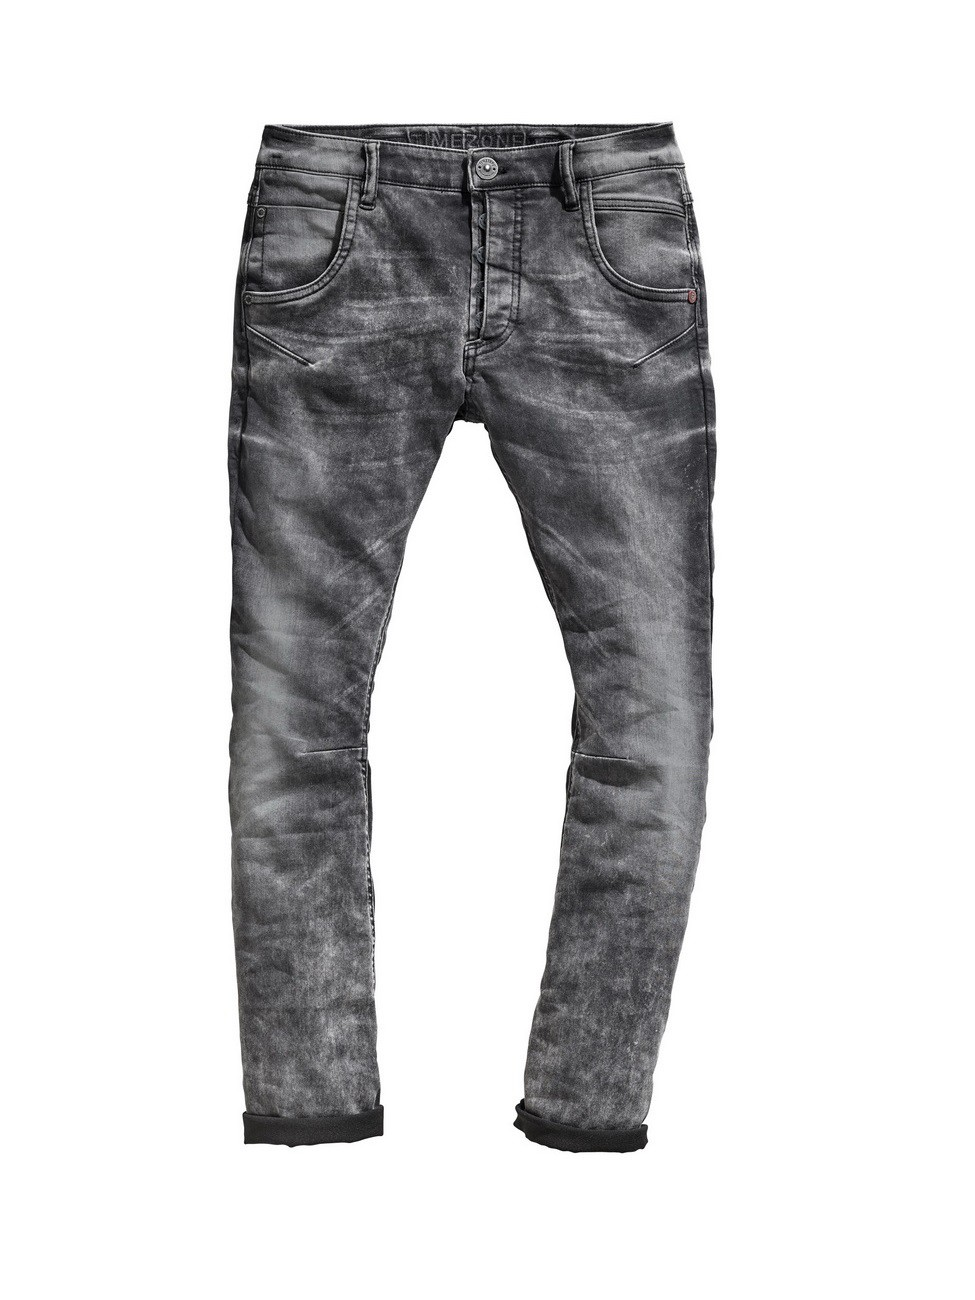 Timezone Damen Jeans RivaTZ - Slim Fit  - Grau - Smut Black Wash